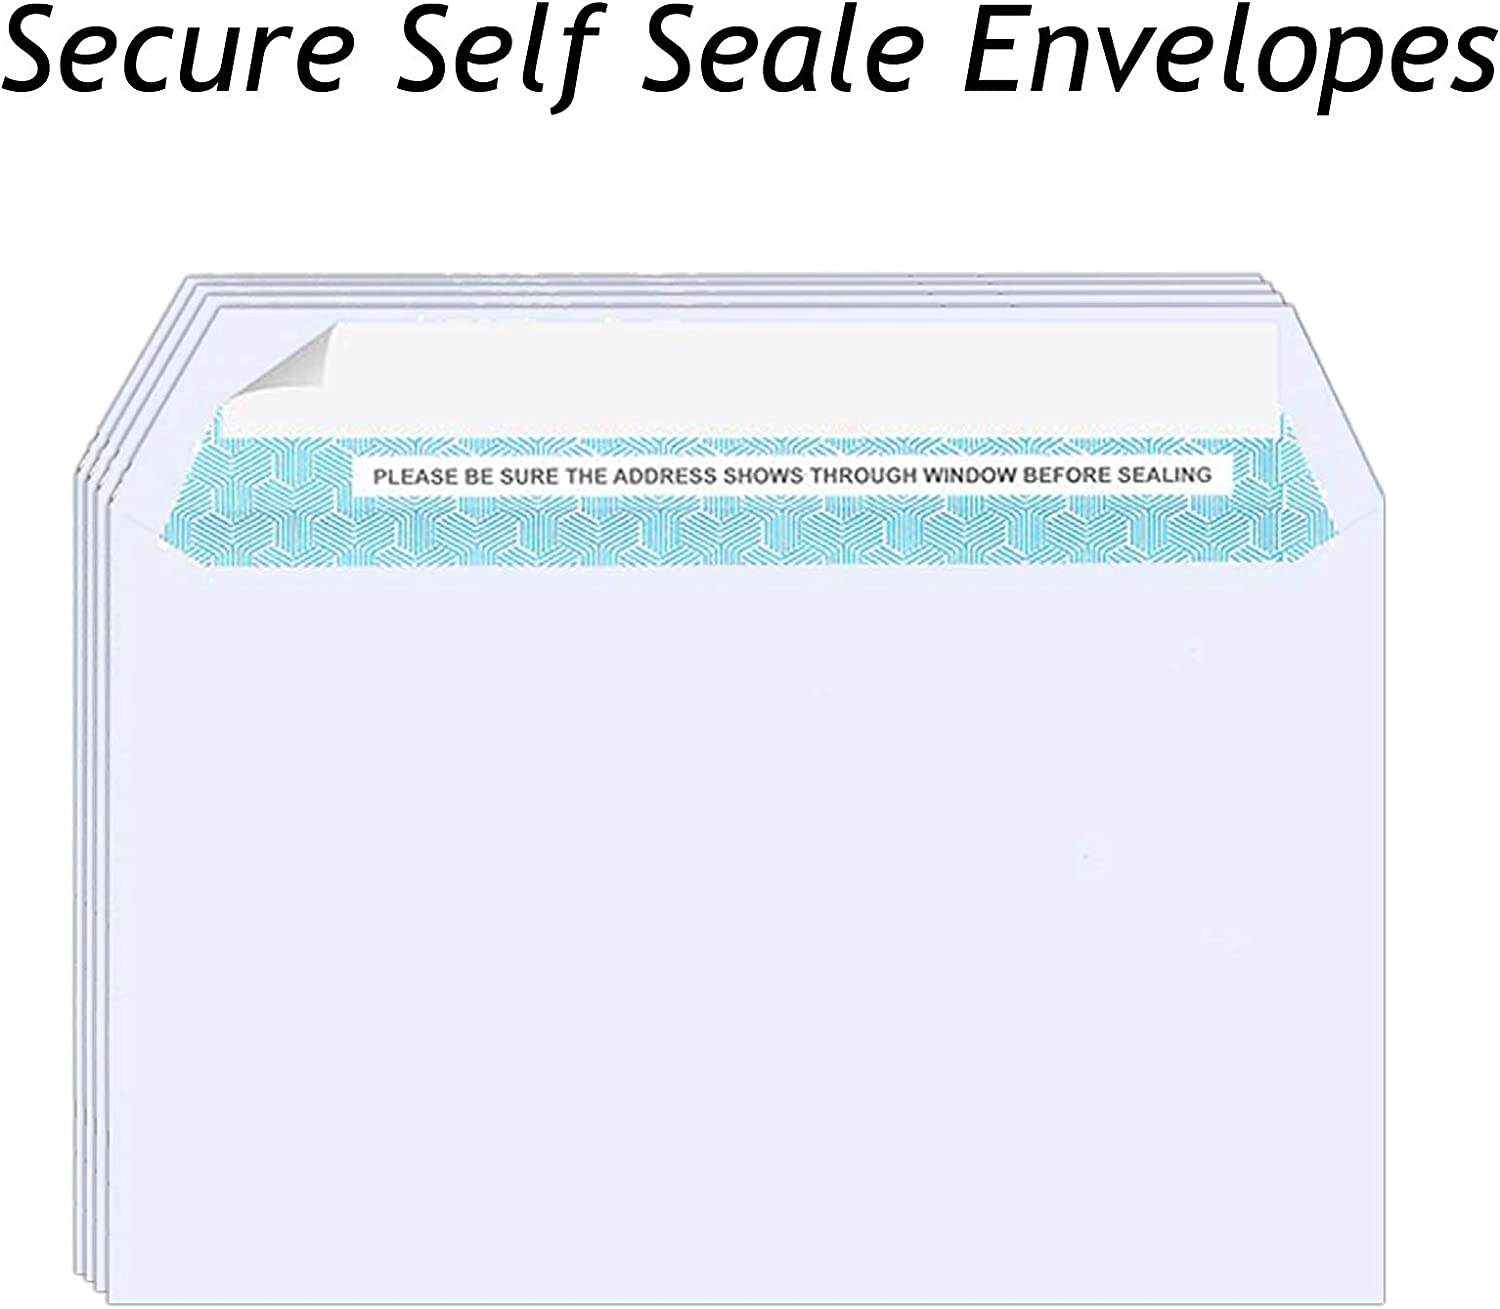 2020 1099 NEC Tax Form Kit for 25 Employees with Self-Seal Envelopes Designed for QuickBooks and Accounting Software 5 Part